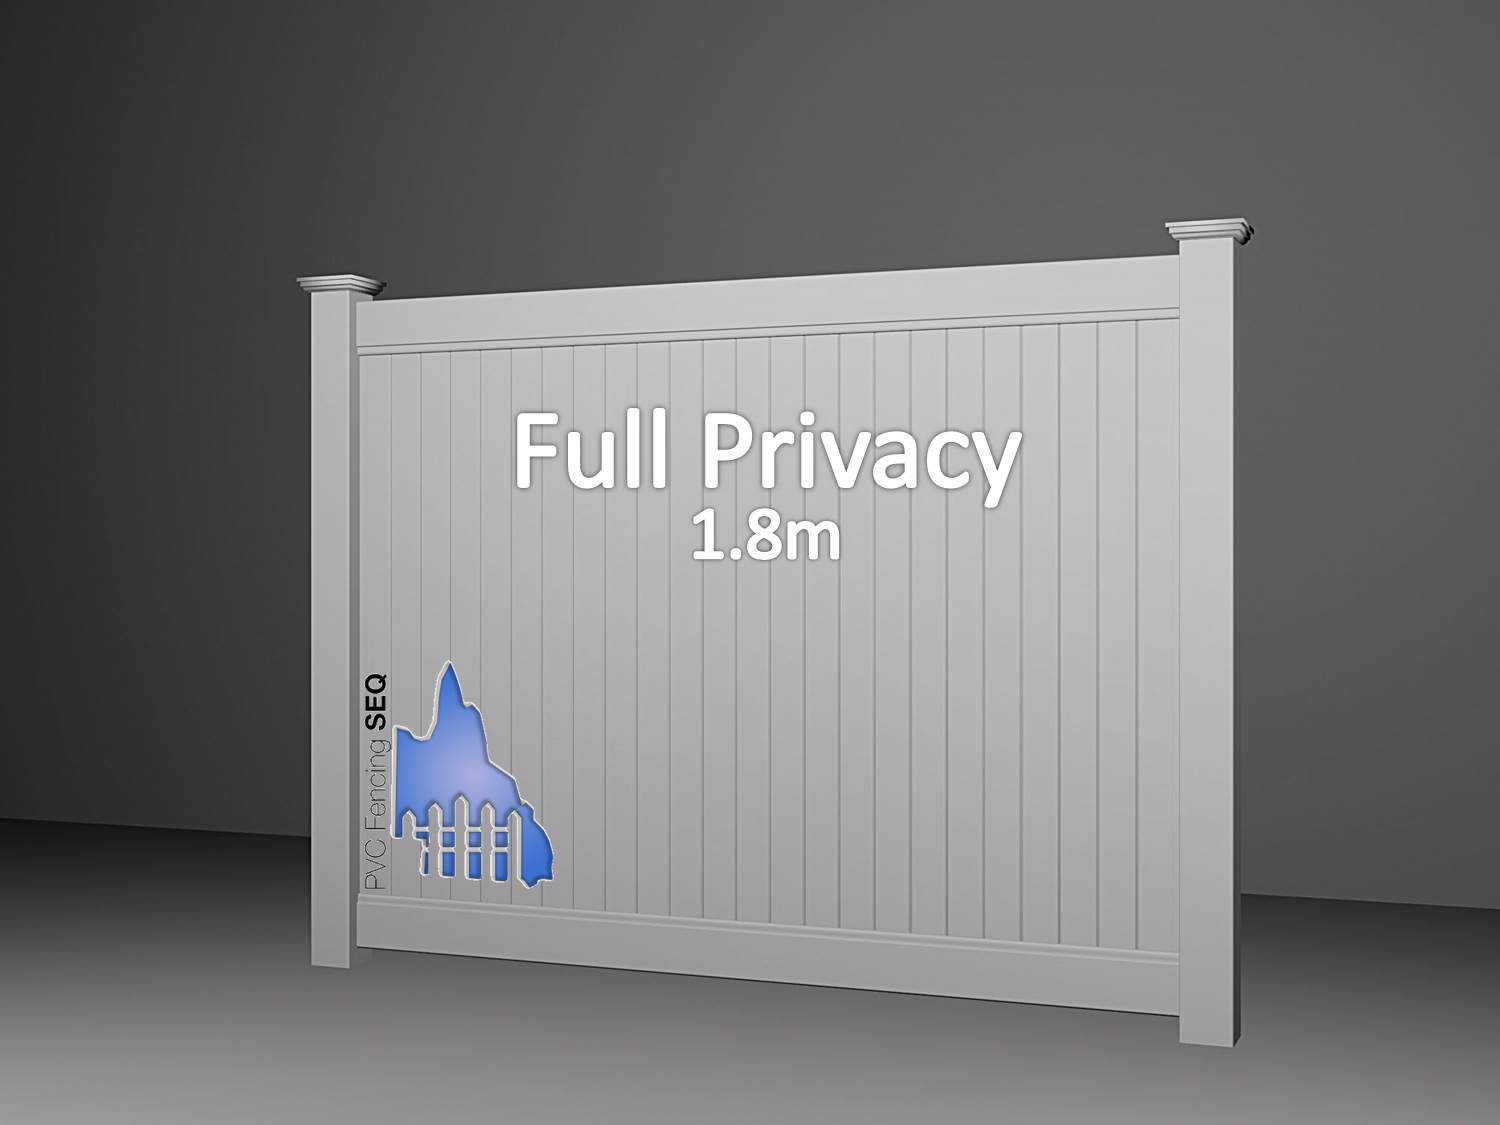 Full Privacy - 1.8m Tall.jpg